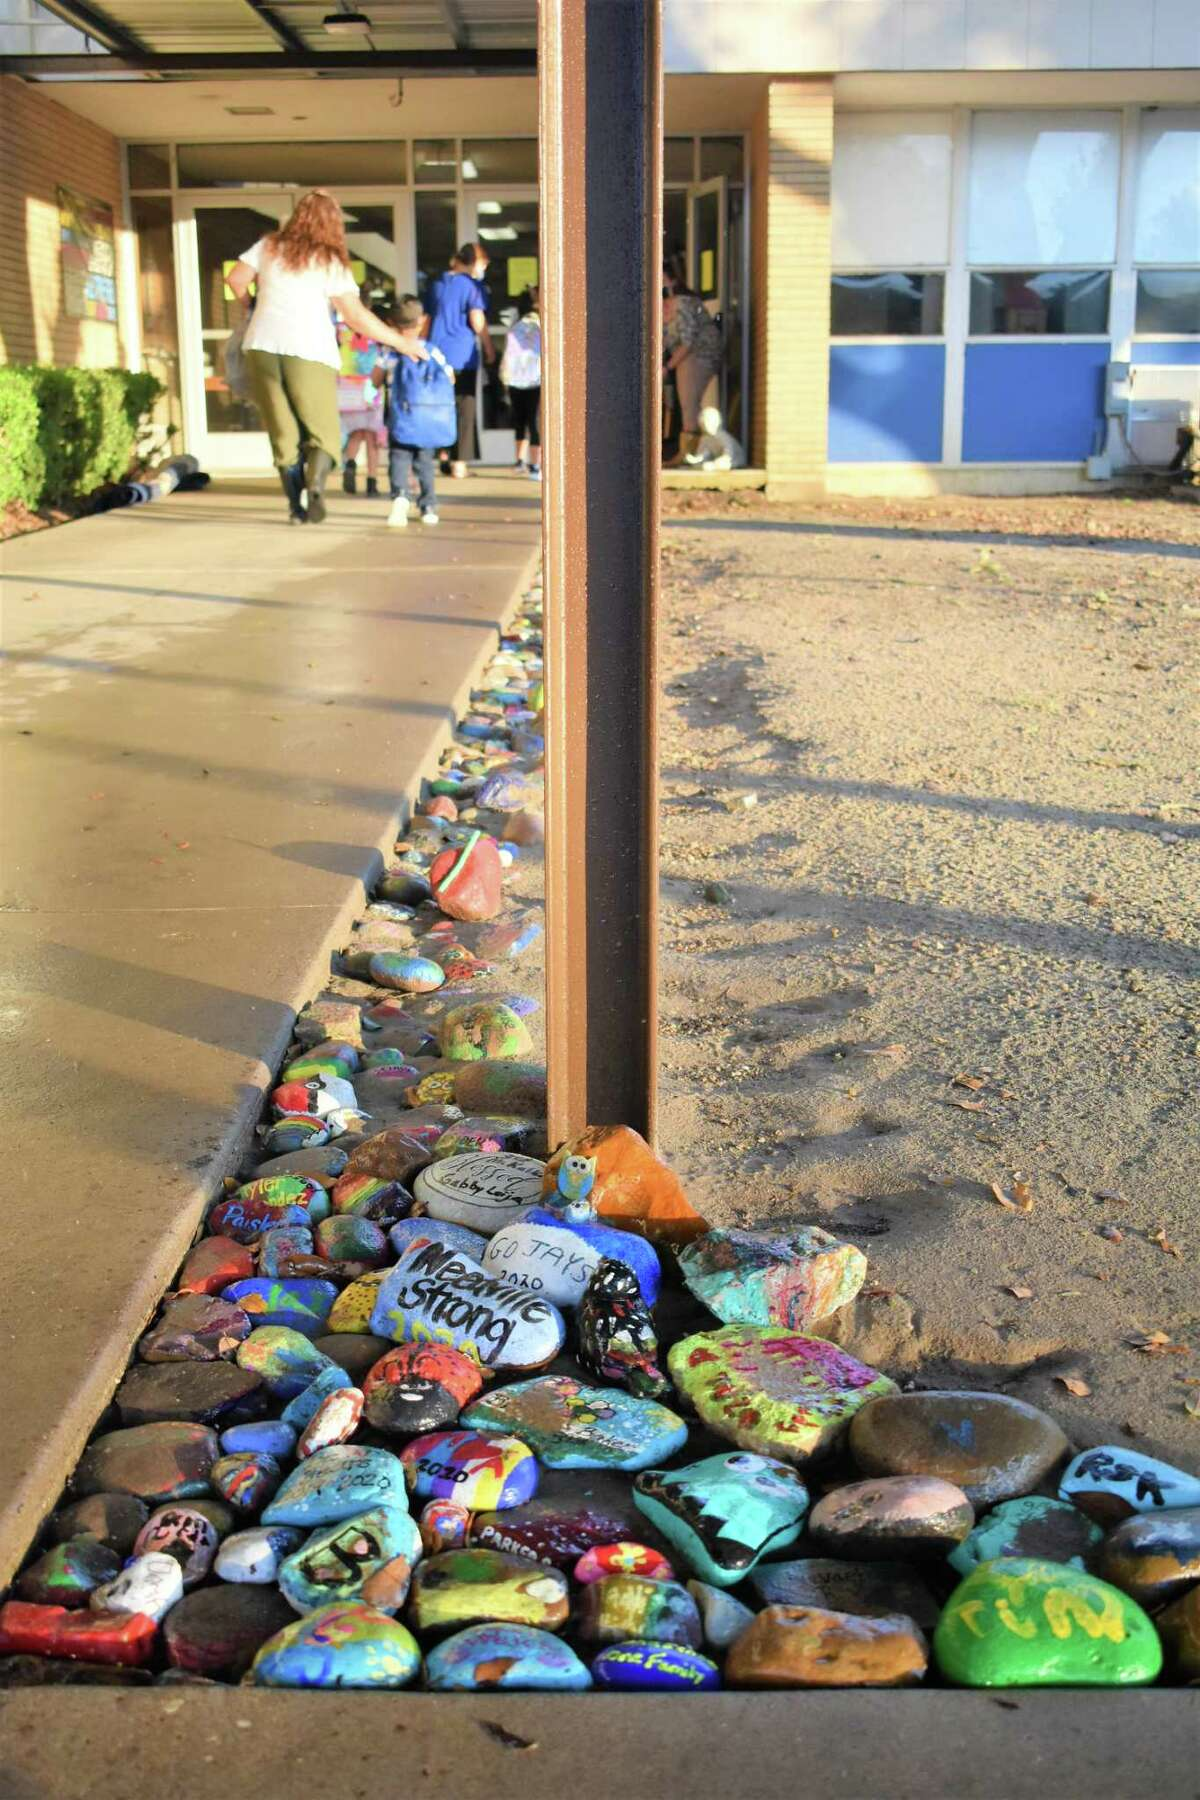 Brightly colored rocks painted by all Needville Elementary School students at the end of the historic 2019-20 school year welcomed them back to the first day of school for the 2020-21 school year. The project enabled students to end the year in a special way since they were unable to be together due to coronavirus.